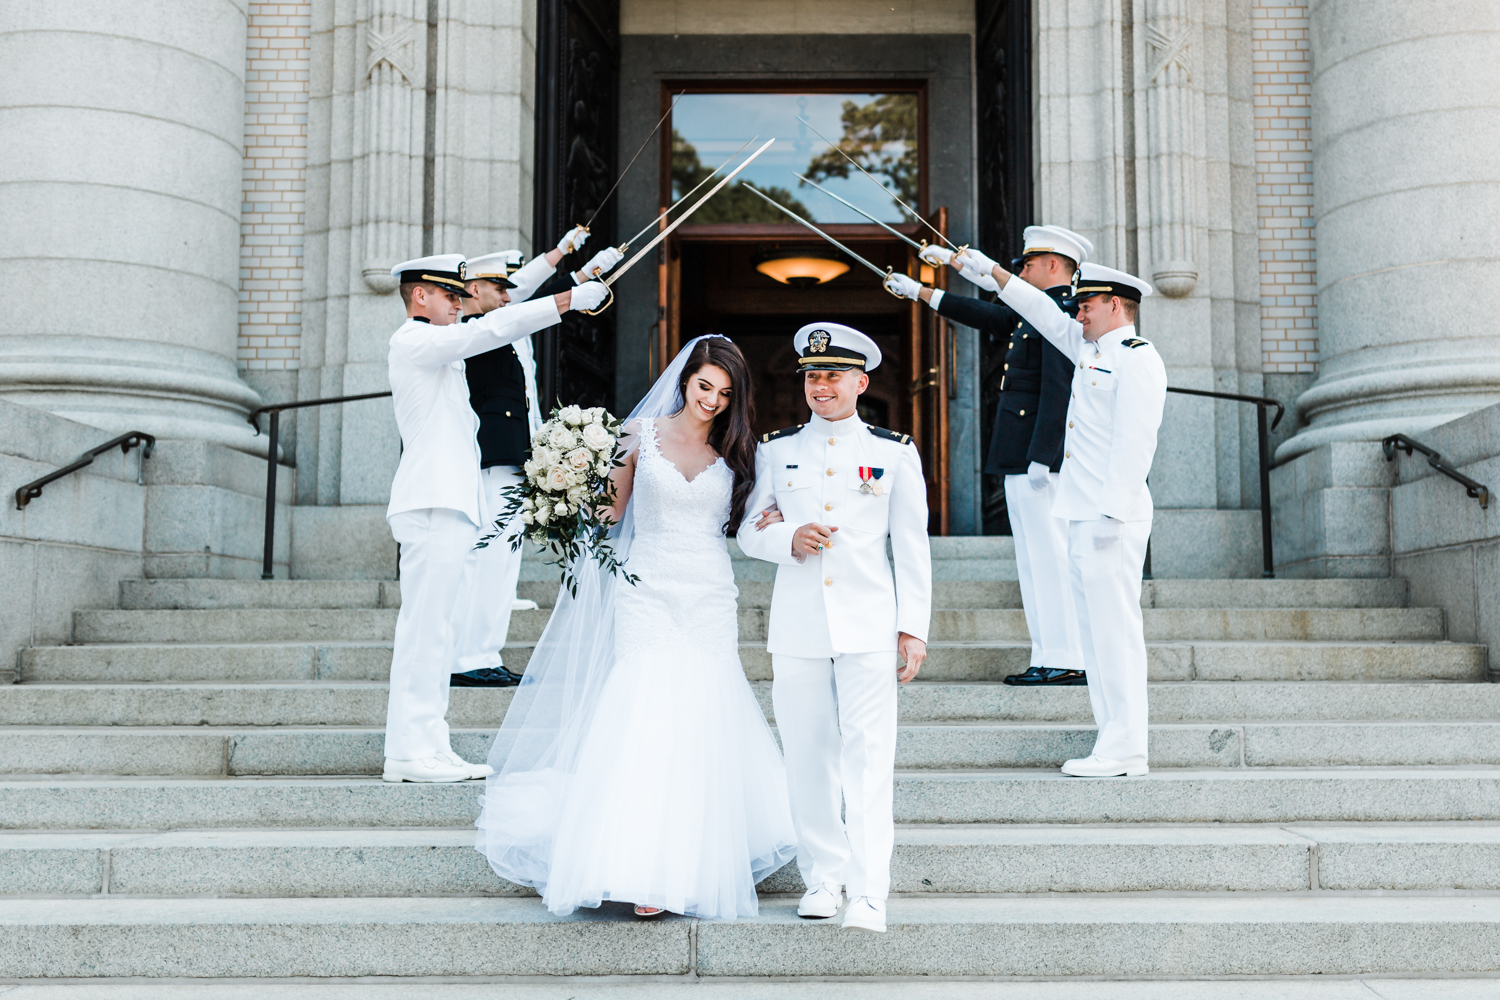 bride and groom happily exit the chapel under sword arch at Naval Academy